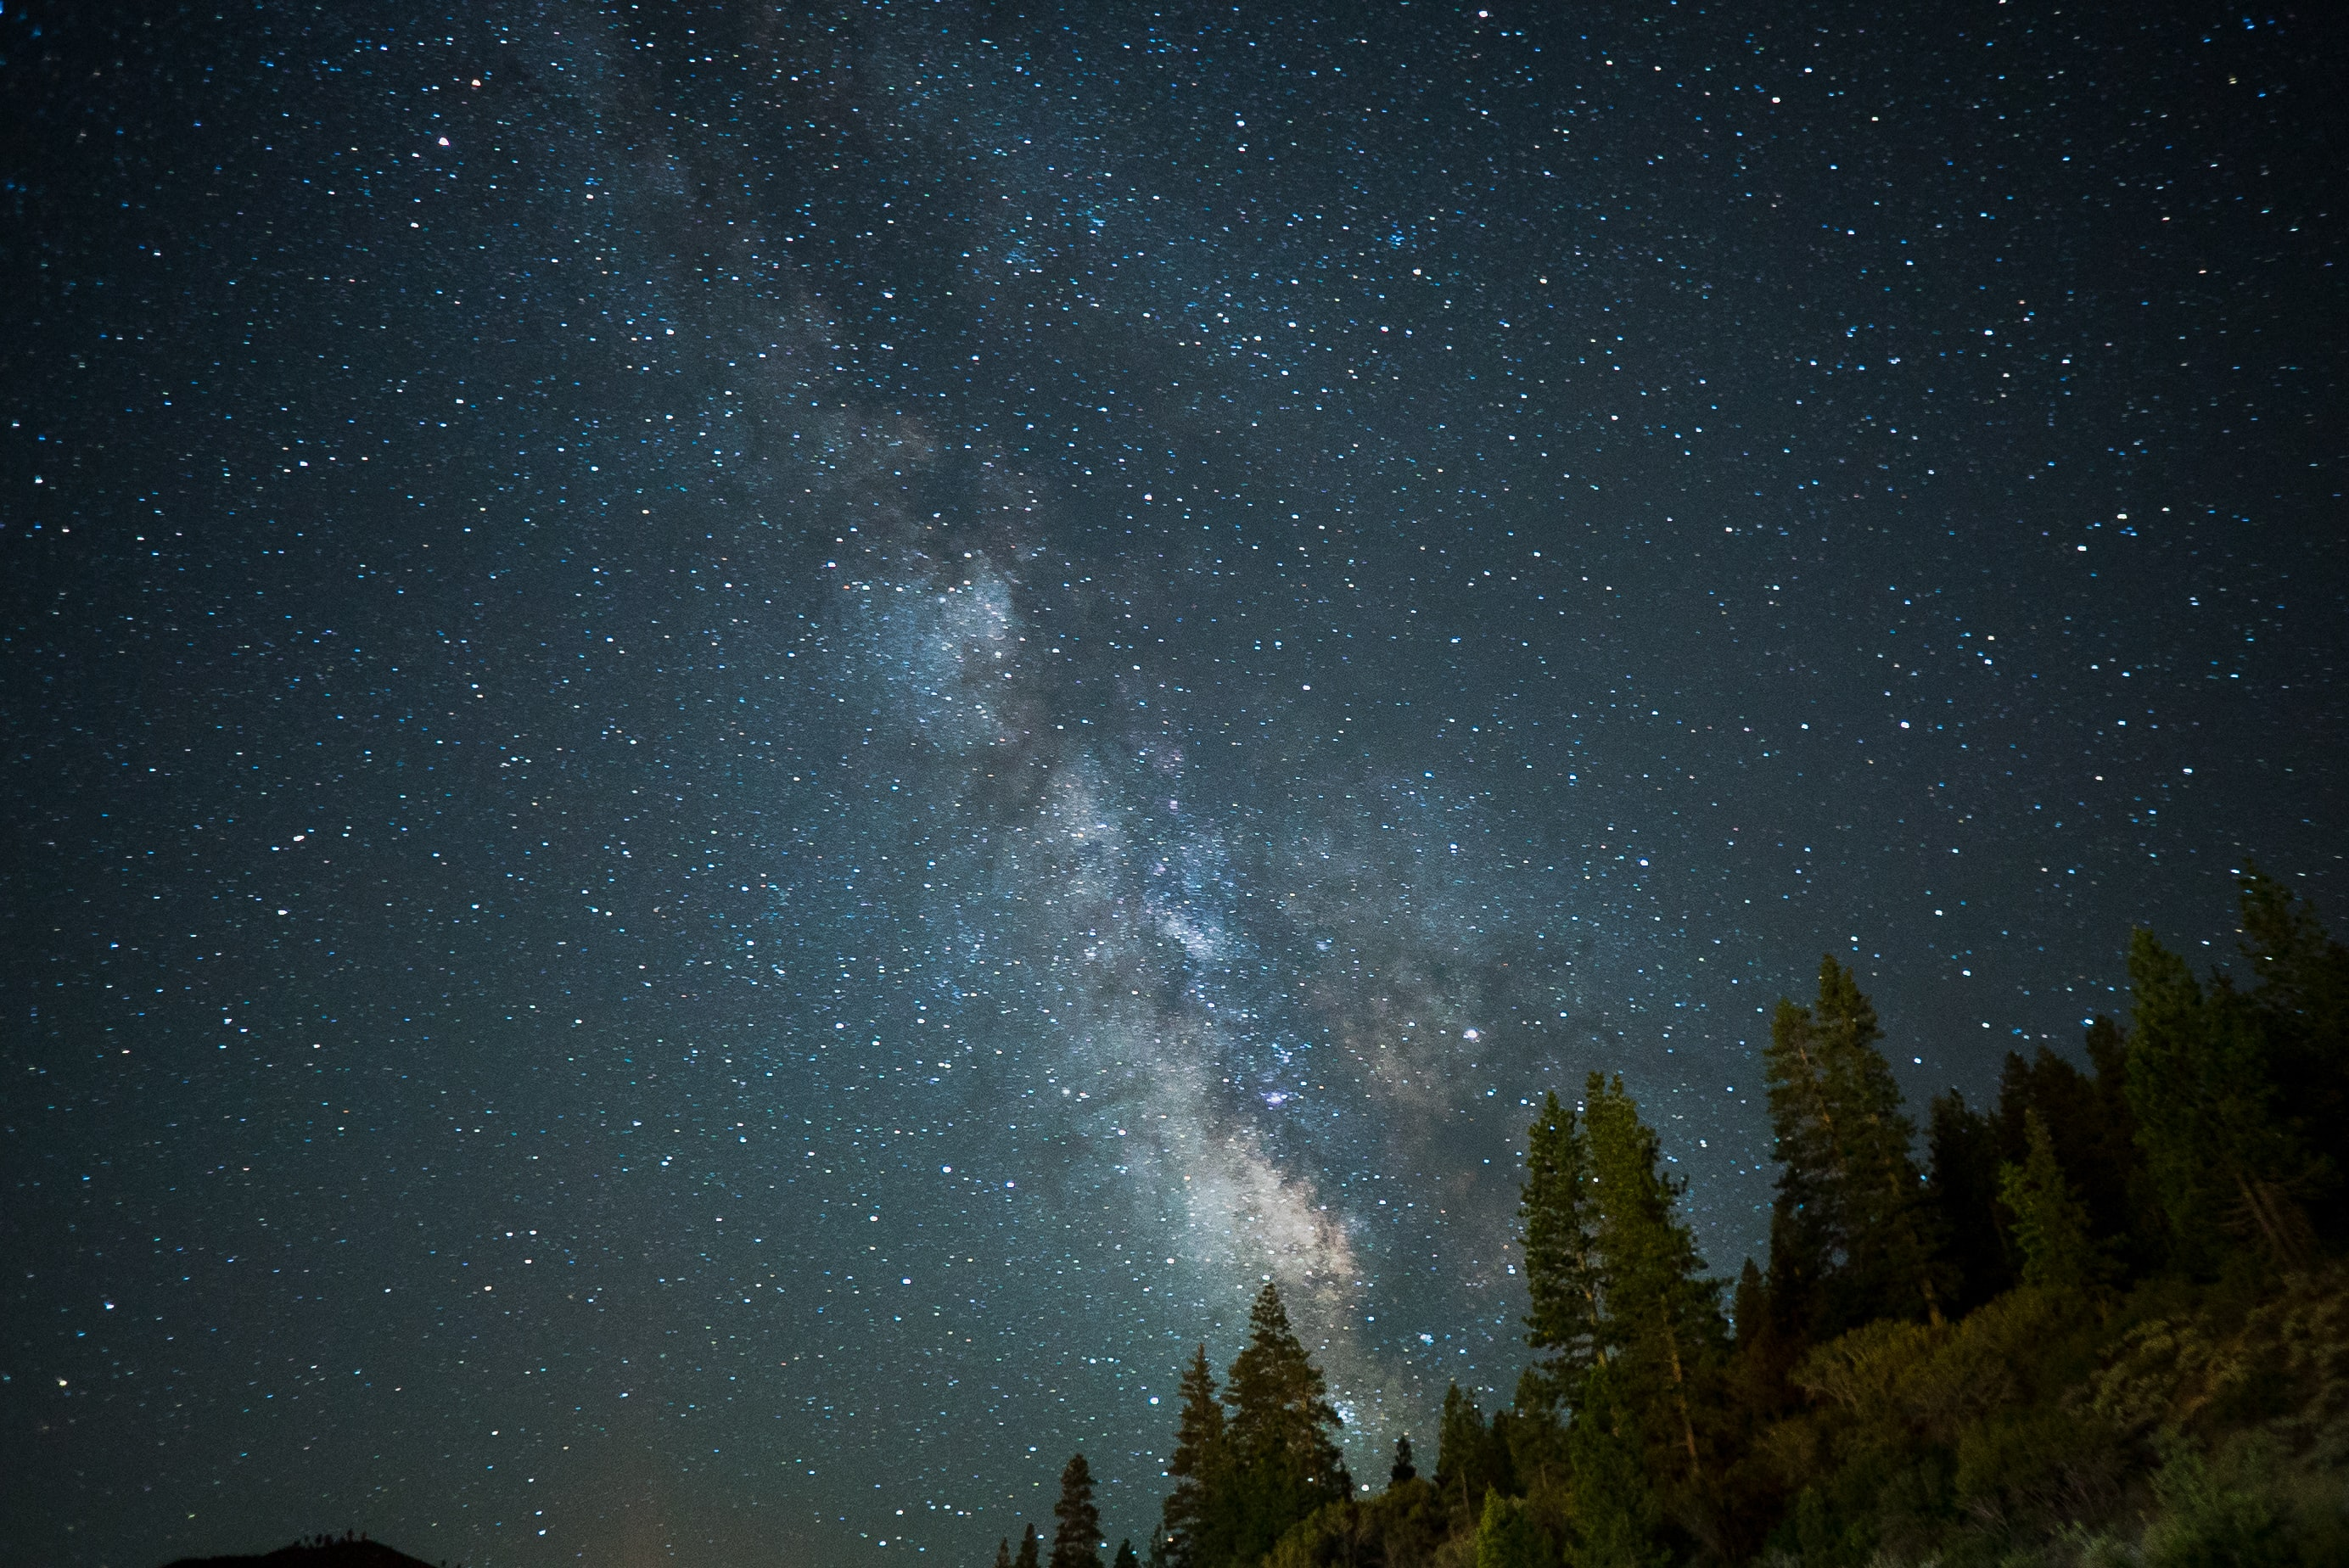 The Milky Way rises above the pine forest as seen in California.